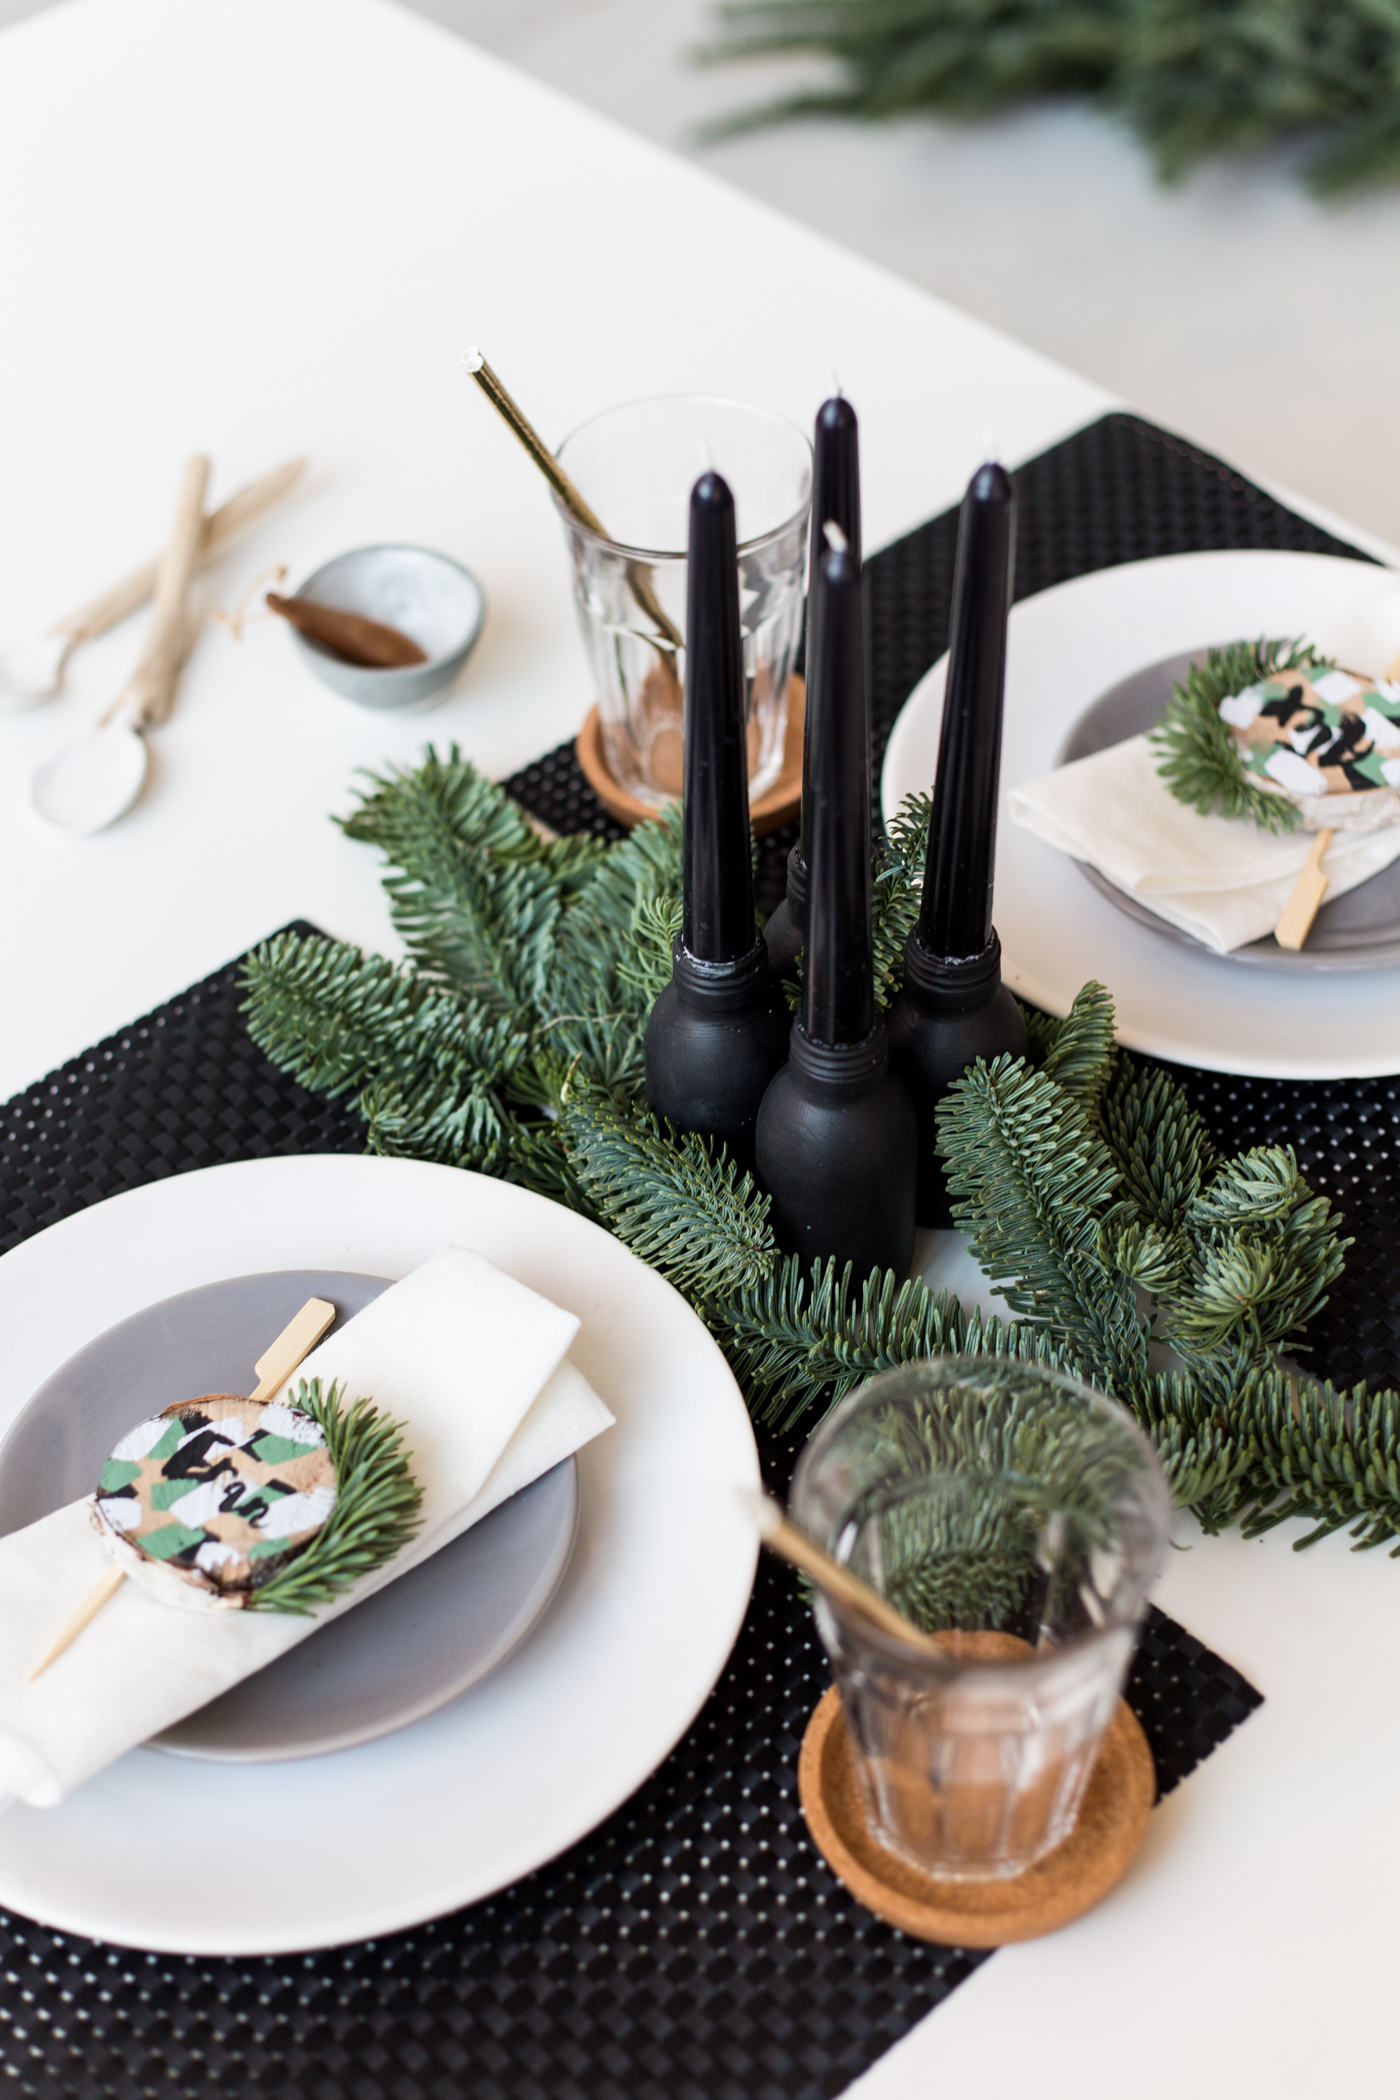 DIY Birch Wood Slice Name Card Table Settings | @fallfordiy